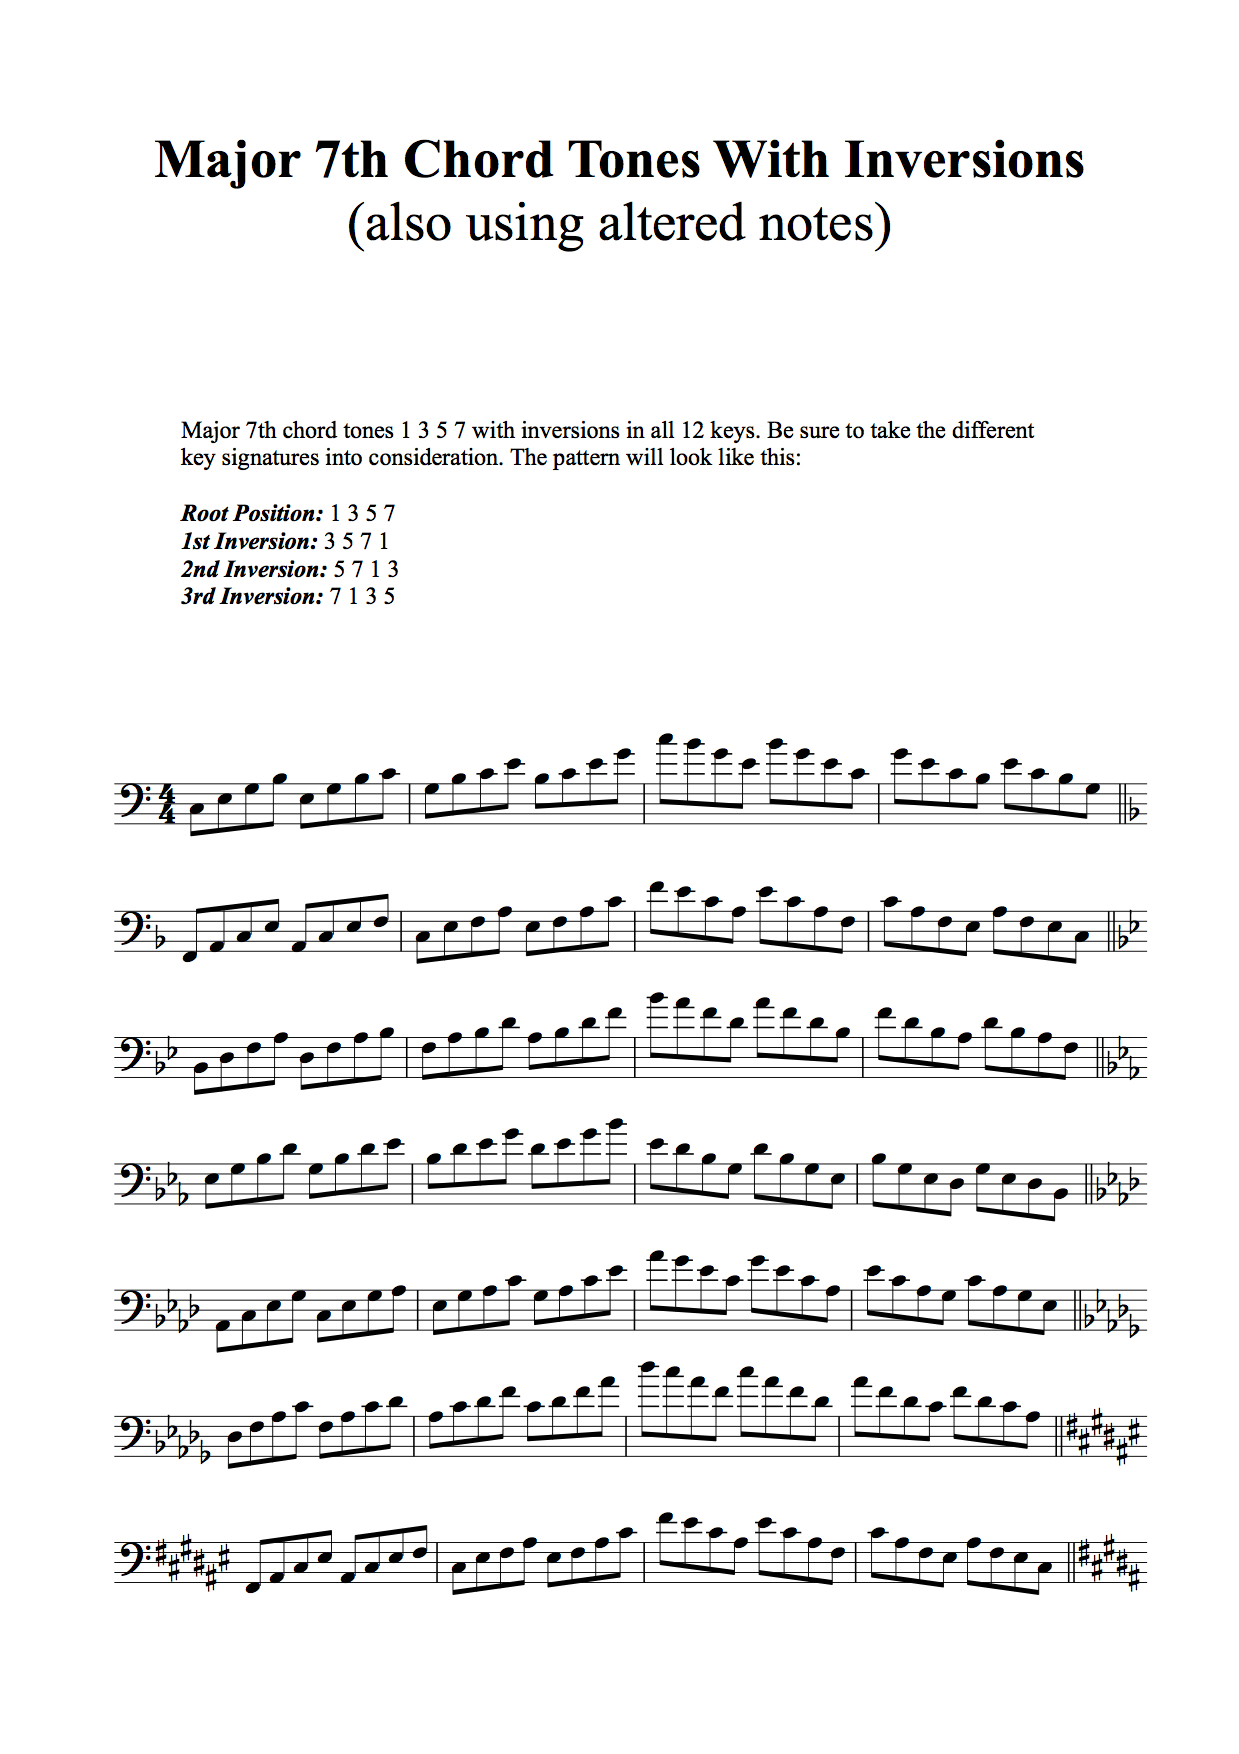 lesson 1 - Here is a lesson/exercise based on major 7th chord tones. This exercise is great because not only does it got you used to hearing the harmony (ear training) but it really starts to open up the fingerboard and makes your THINK about what you're playing. Especially when you play it in all 12 keys and start using altered intervals within the exercise.